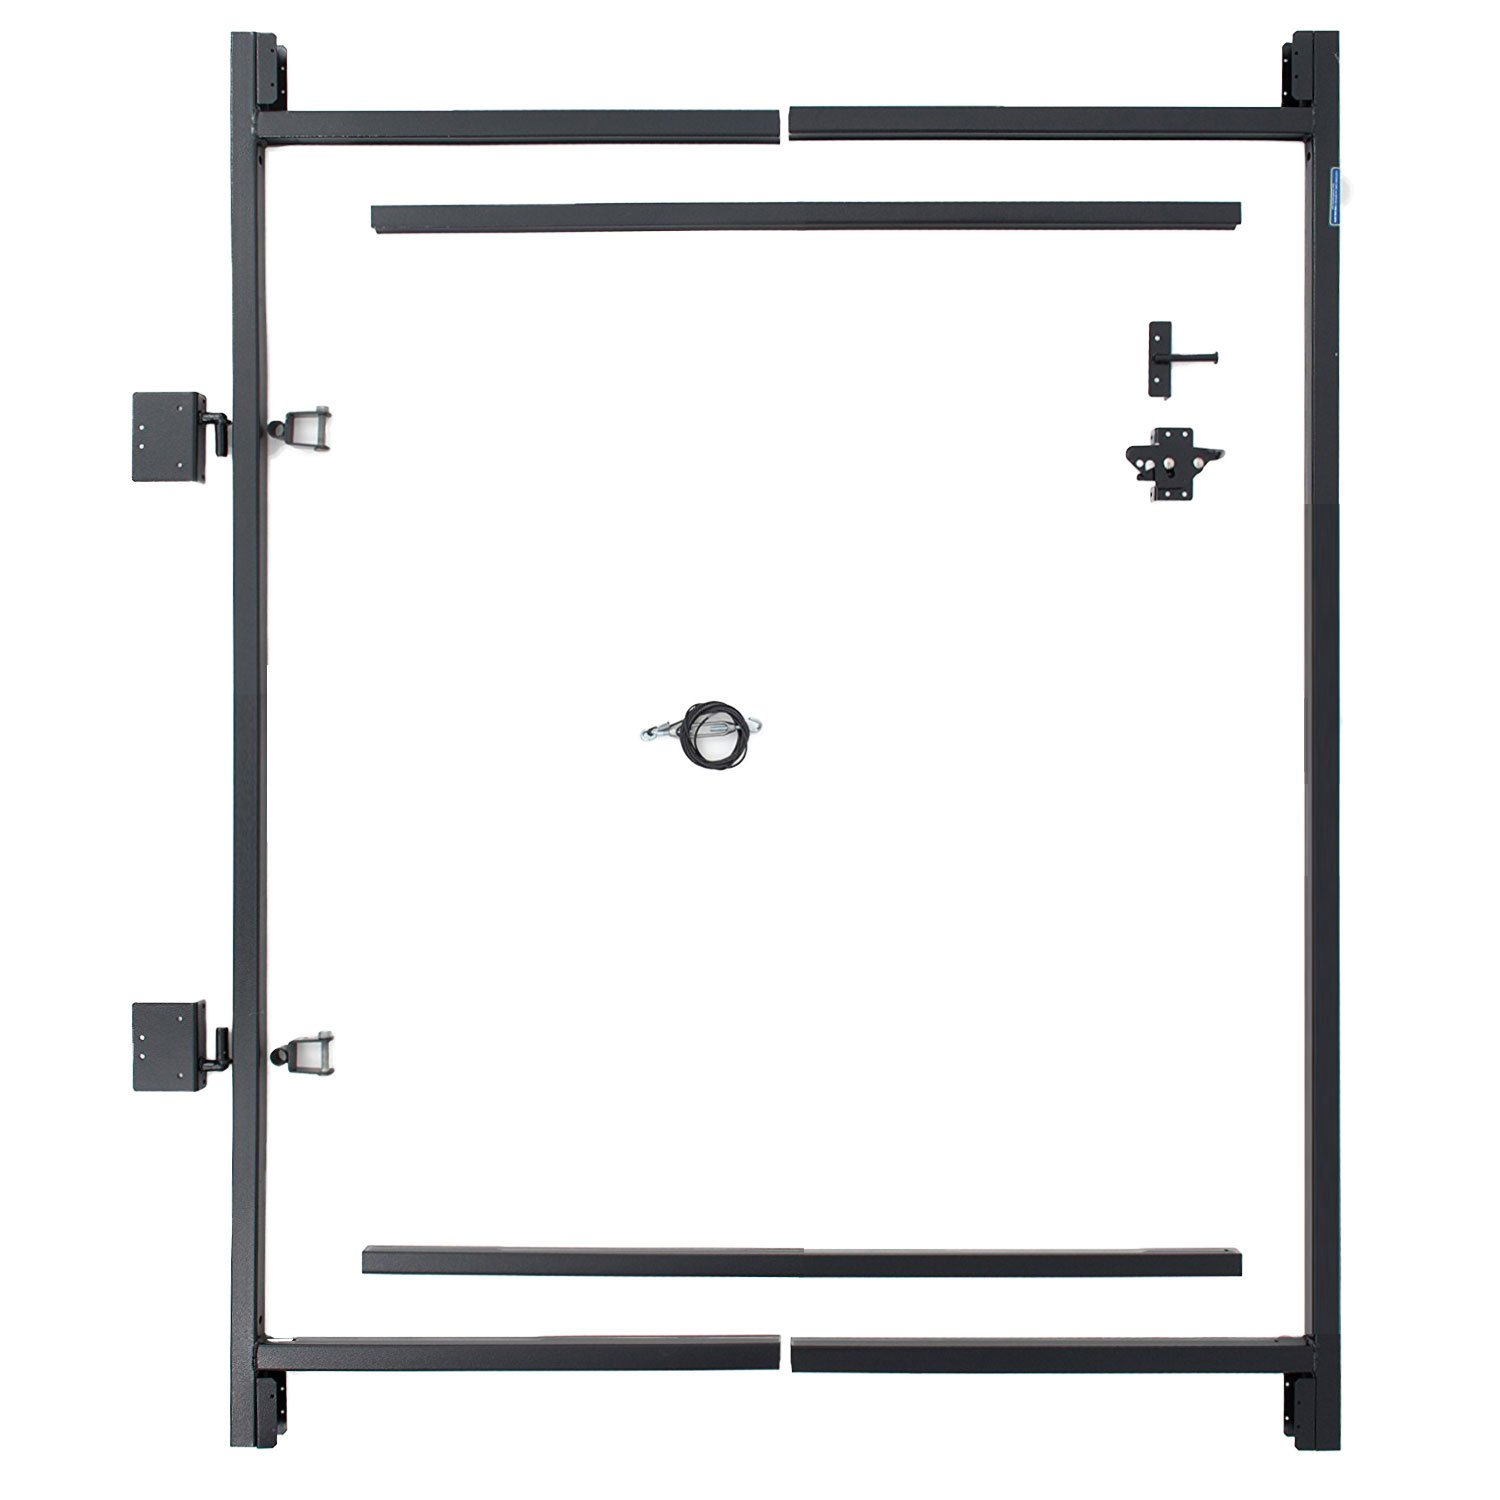 Adjust-A-Gate Steel Frame Gate Building Kit (36''-60'' wide openings up to 5' high fence)